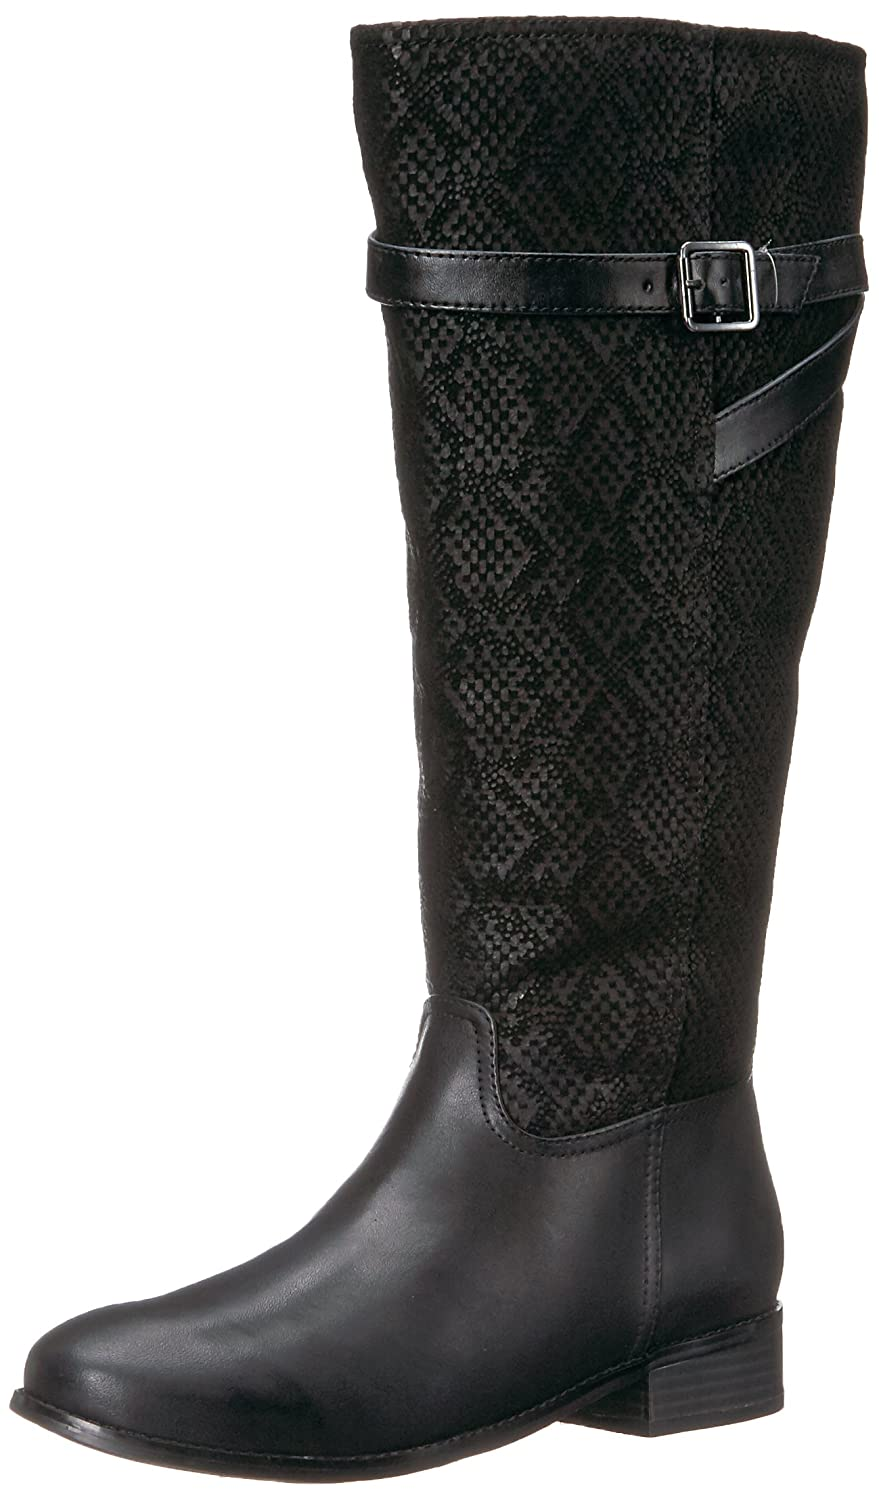 Trotters Women's Lyra Wide Calf Riding Boot B01NGYJPSV 6 2W US|Black